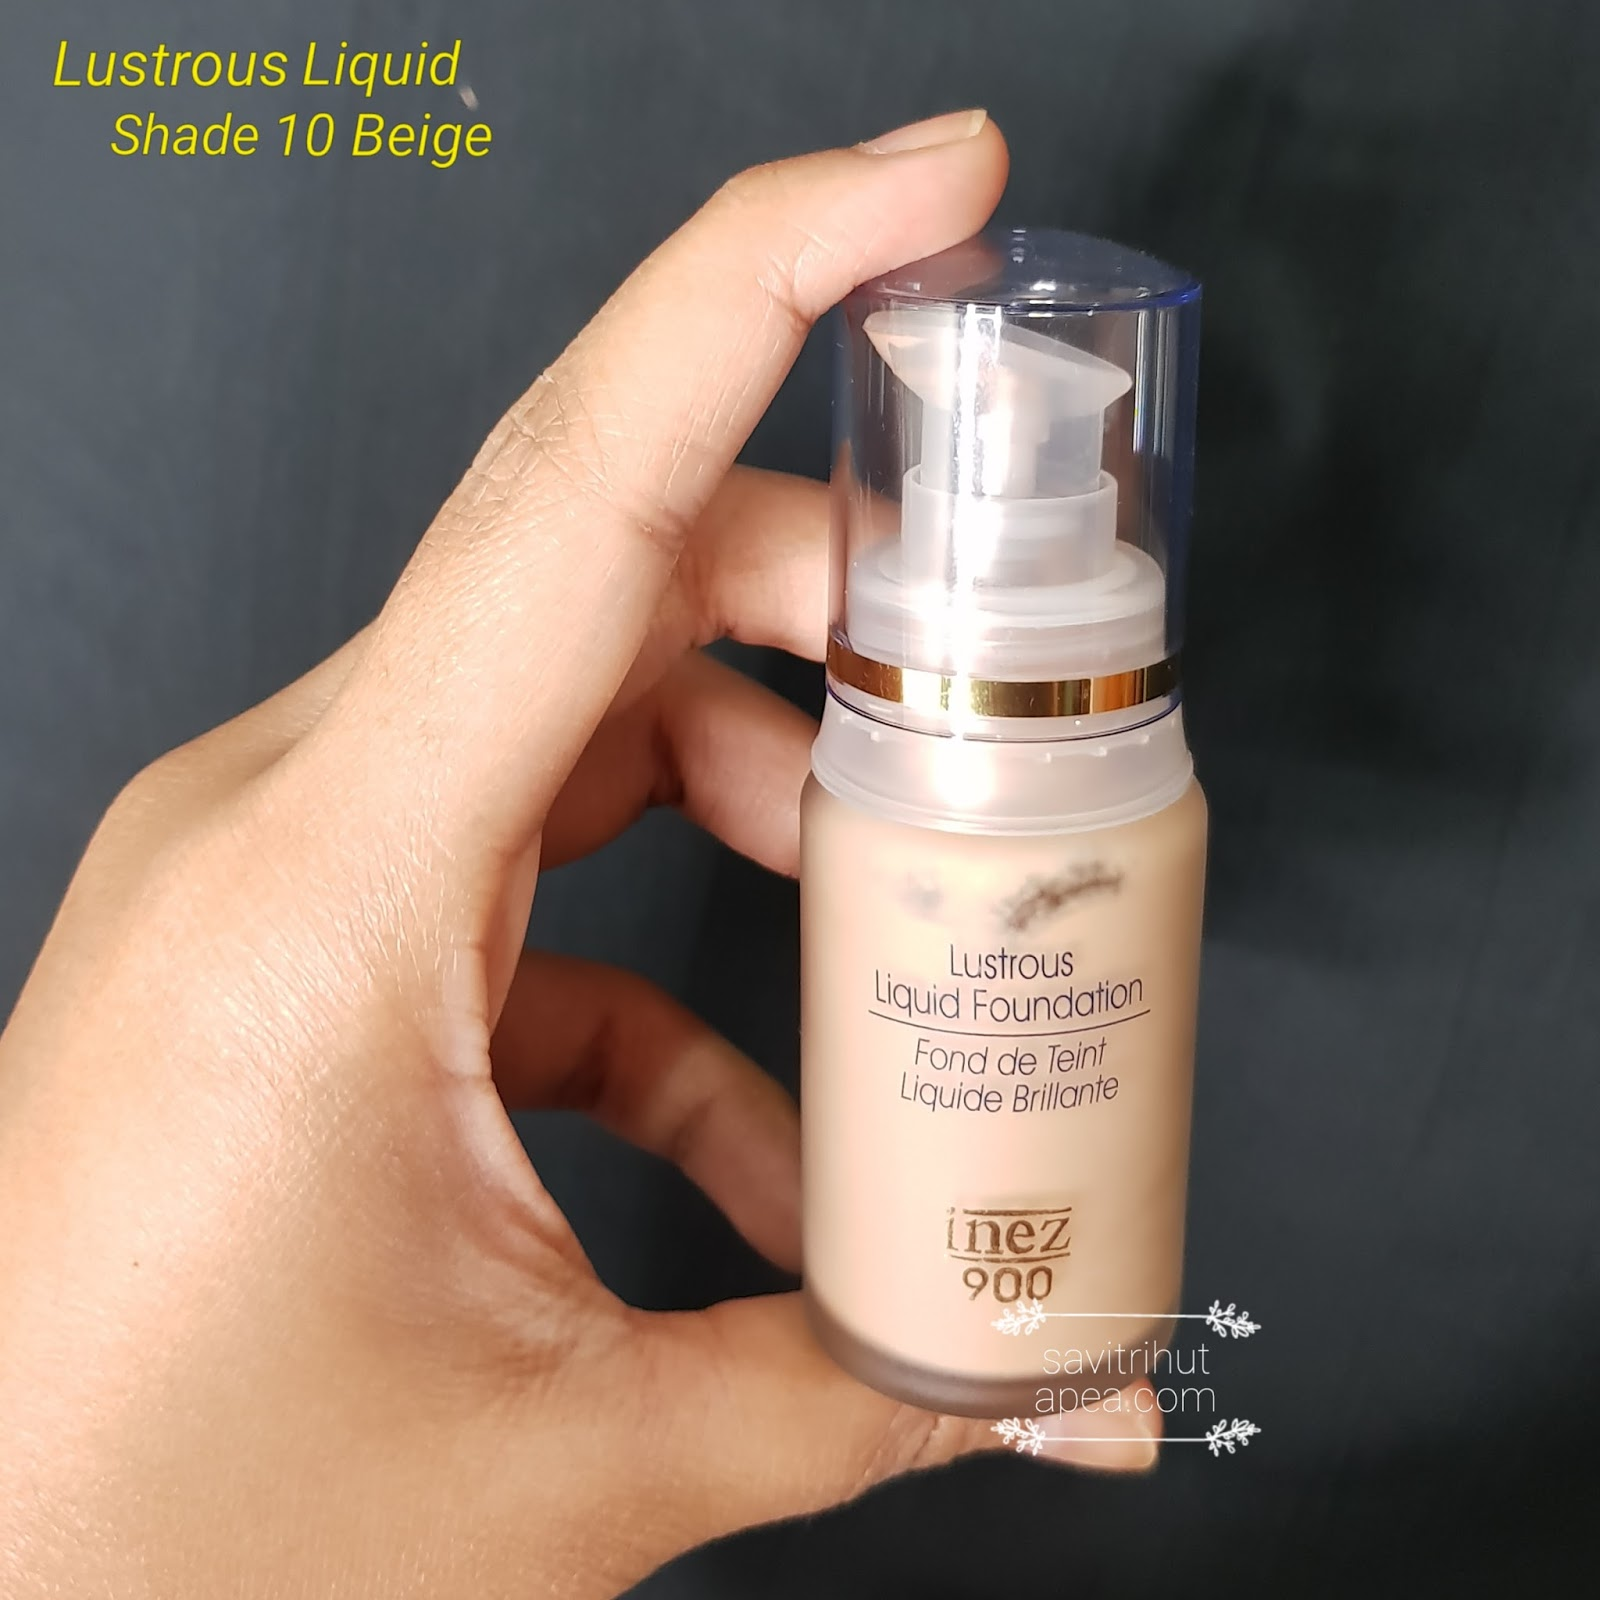 Sponsored Natural Makeup Look Menggunakan Brand Inez Cosmetics Lustrous Liquit Foundation Tahap Ketiga Aku Liquid